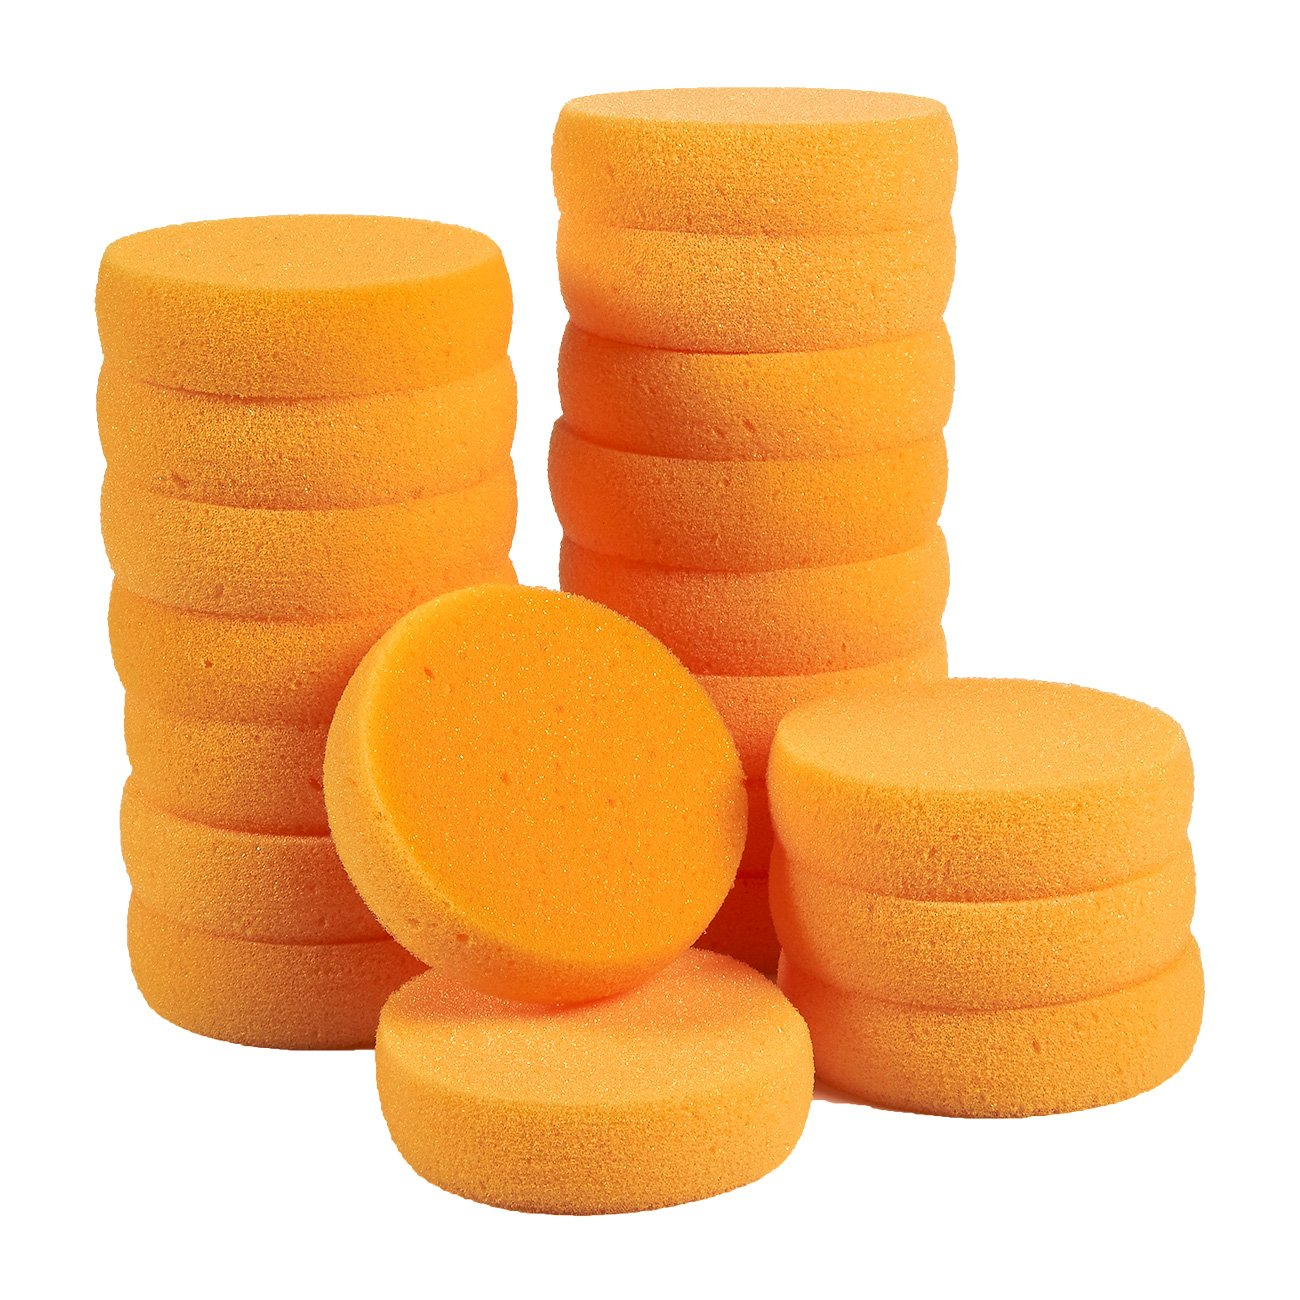 Pack of 20 Synthetic Sponges - Round Craft Sponges - Ideal for Painting, Face Painting, Crafts, Pottery, Clay, Household Use, 3.5 x 1 x 3.5 Inches, Orange by Blue Panda